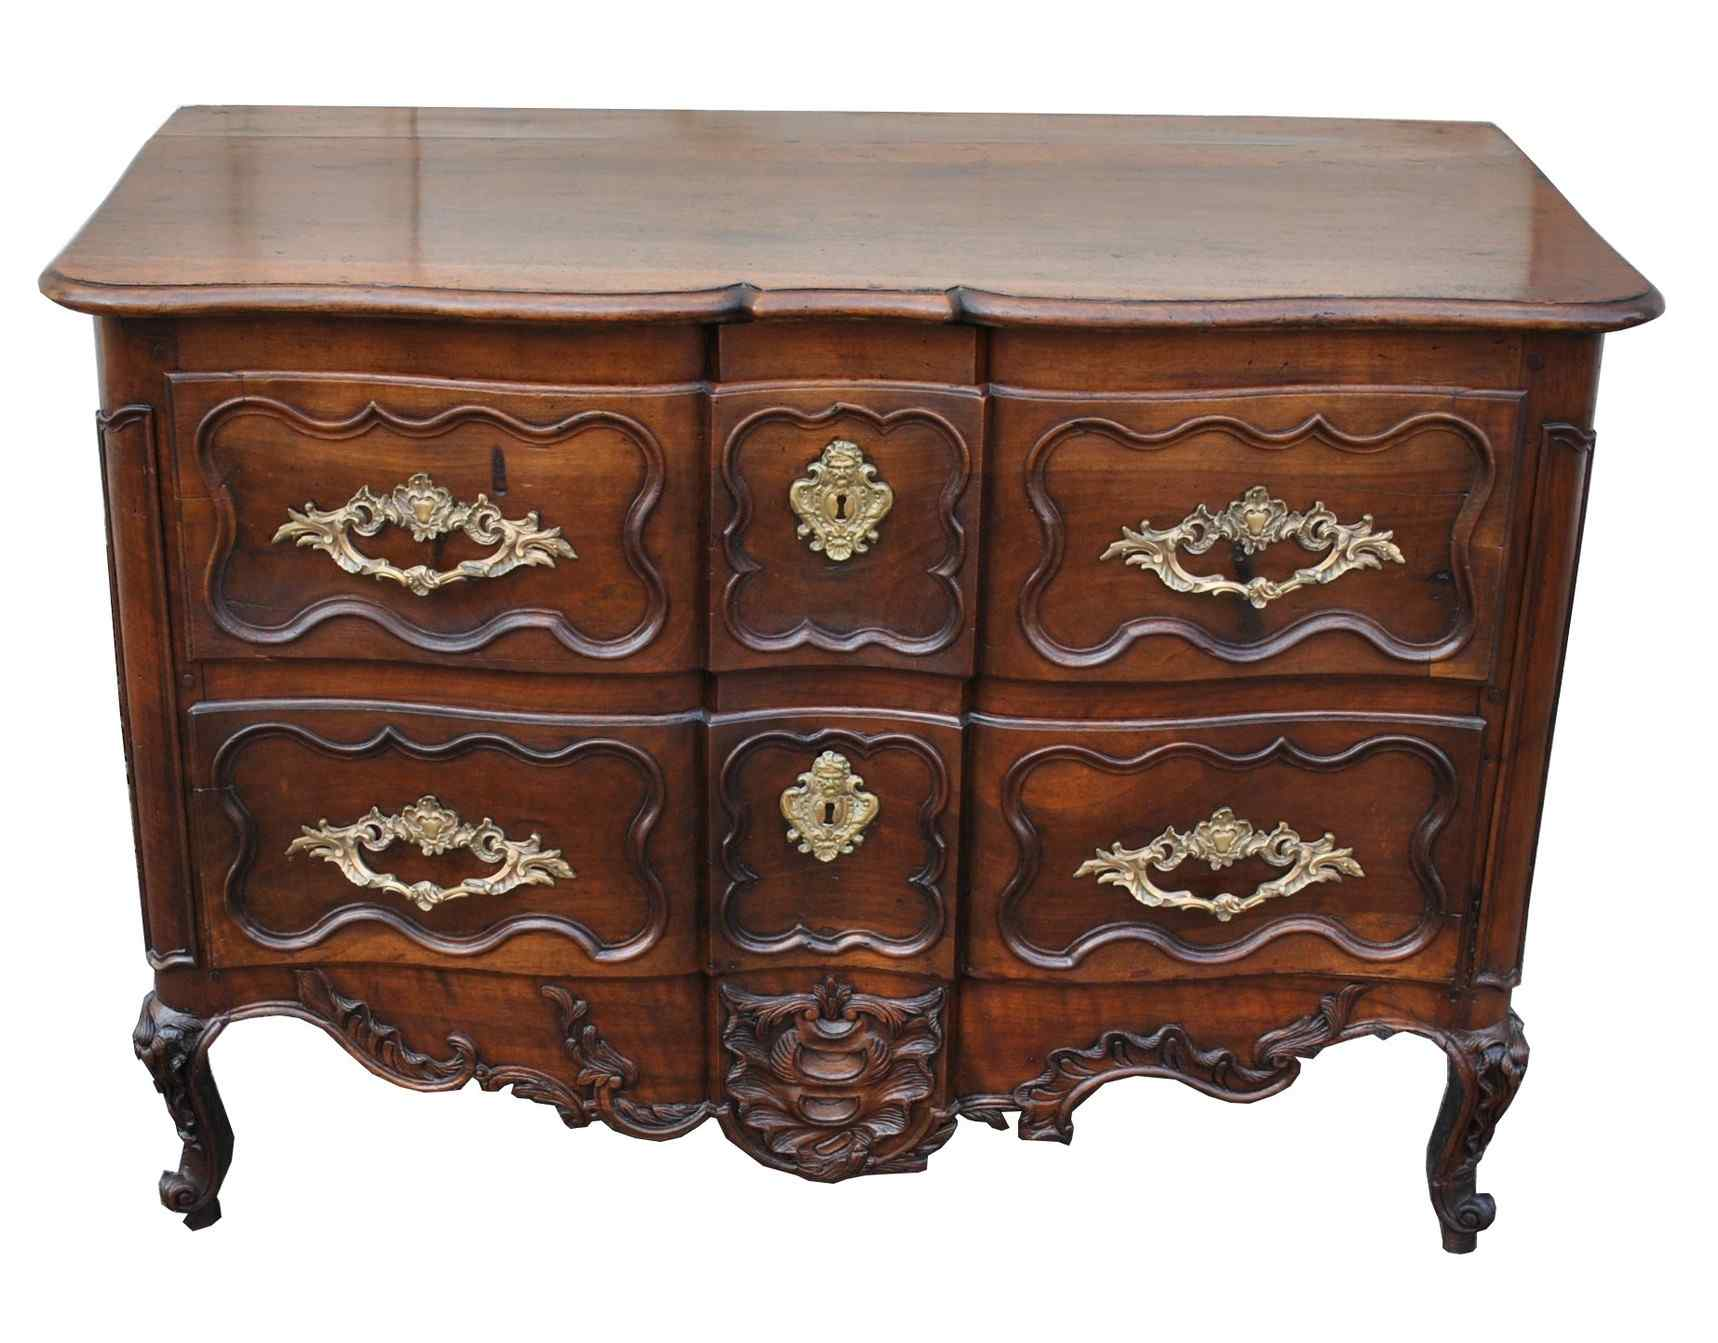 Provencal Commode Walnut Carved, Eighteenth Century